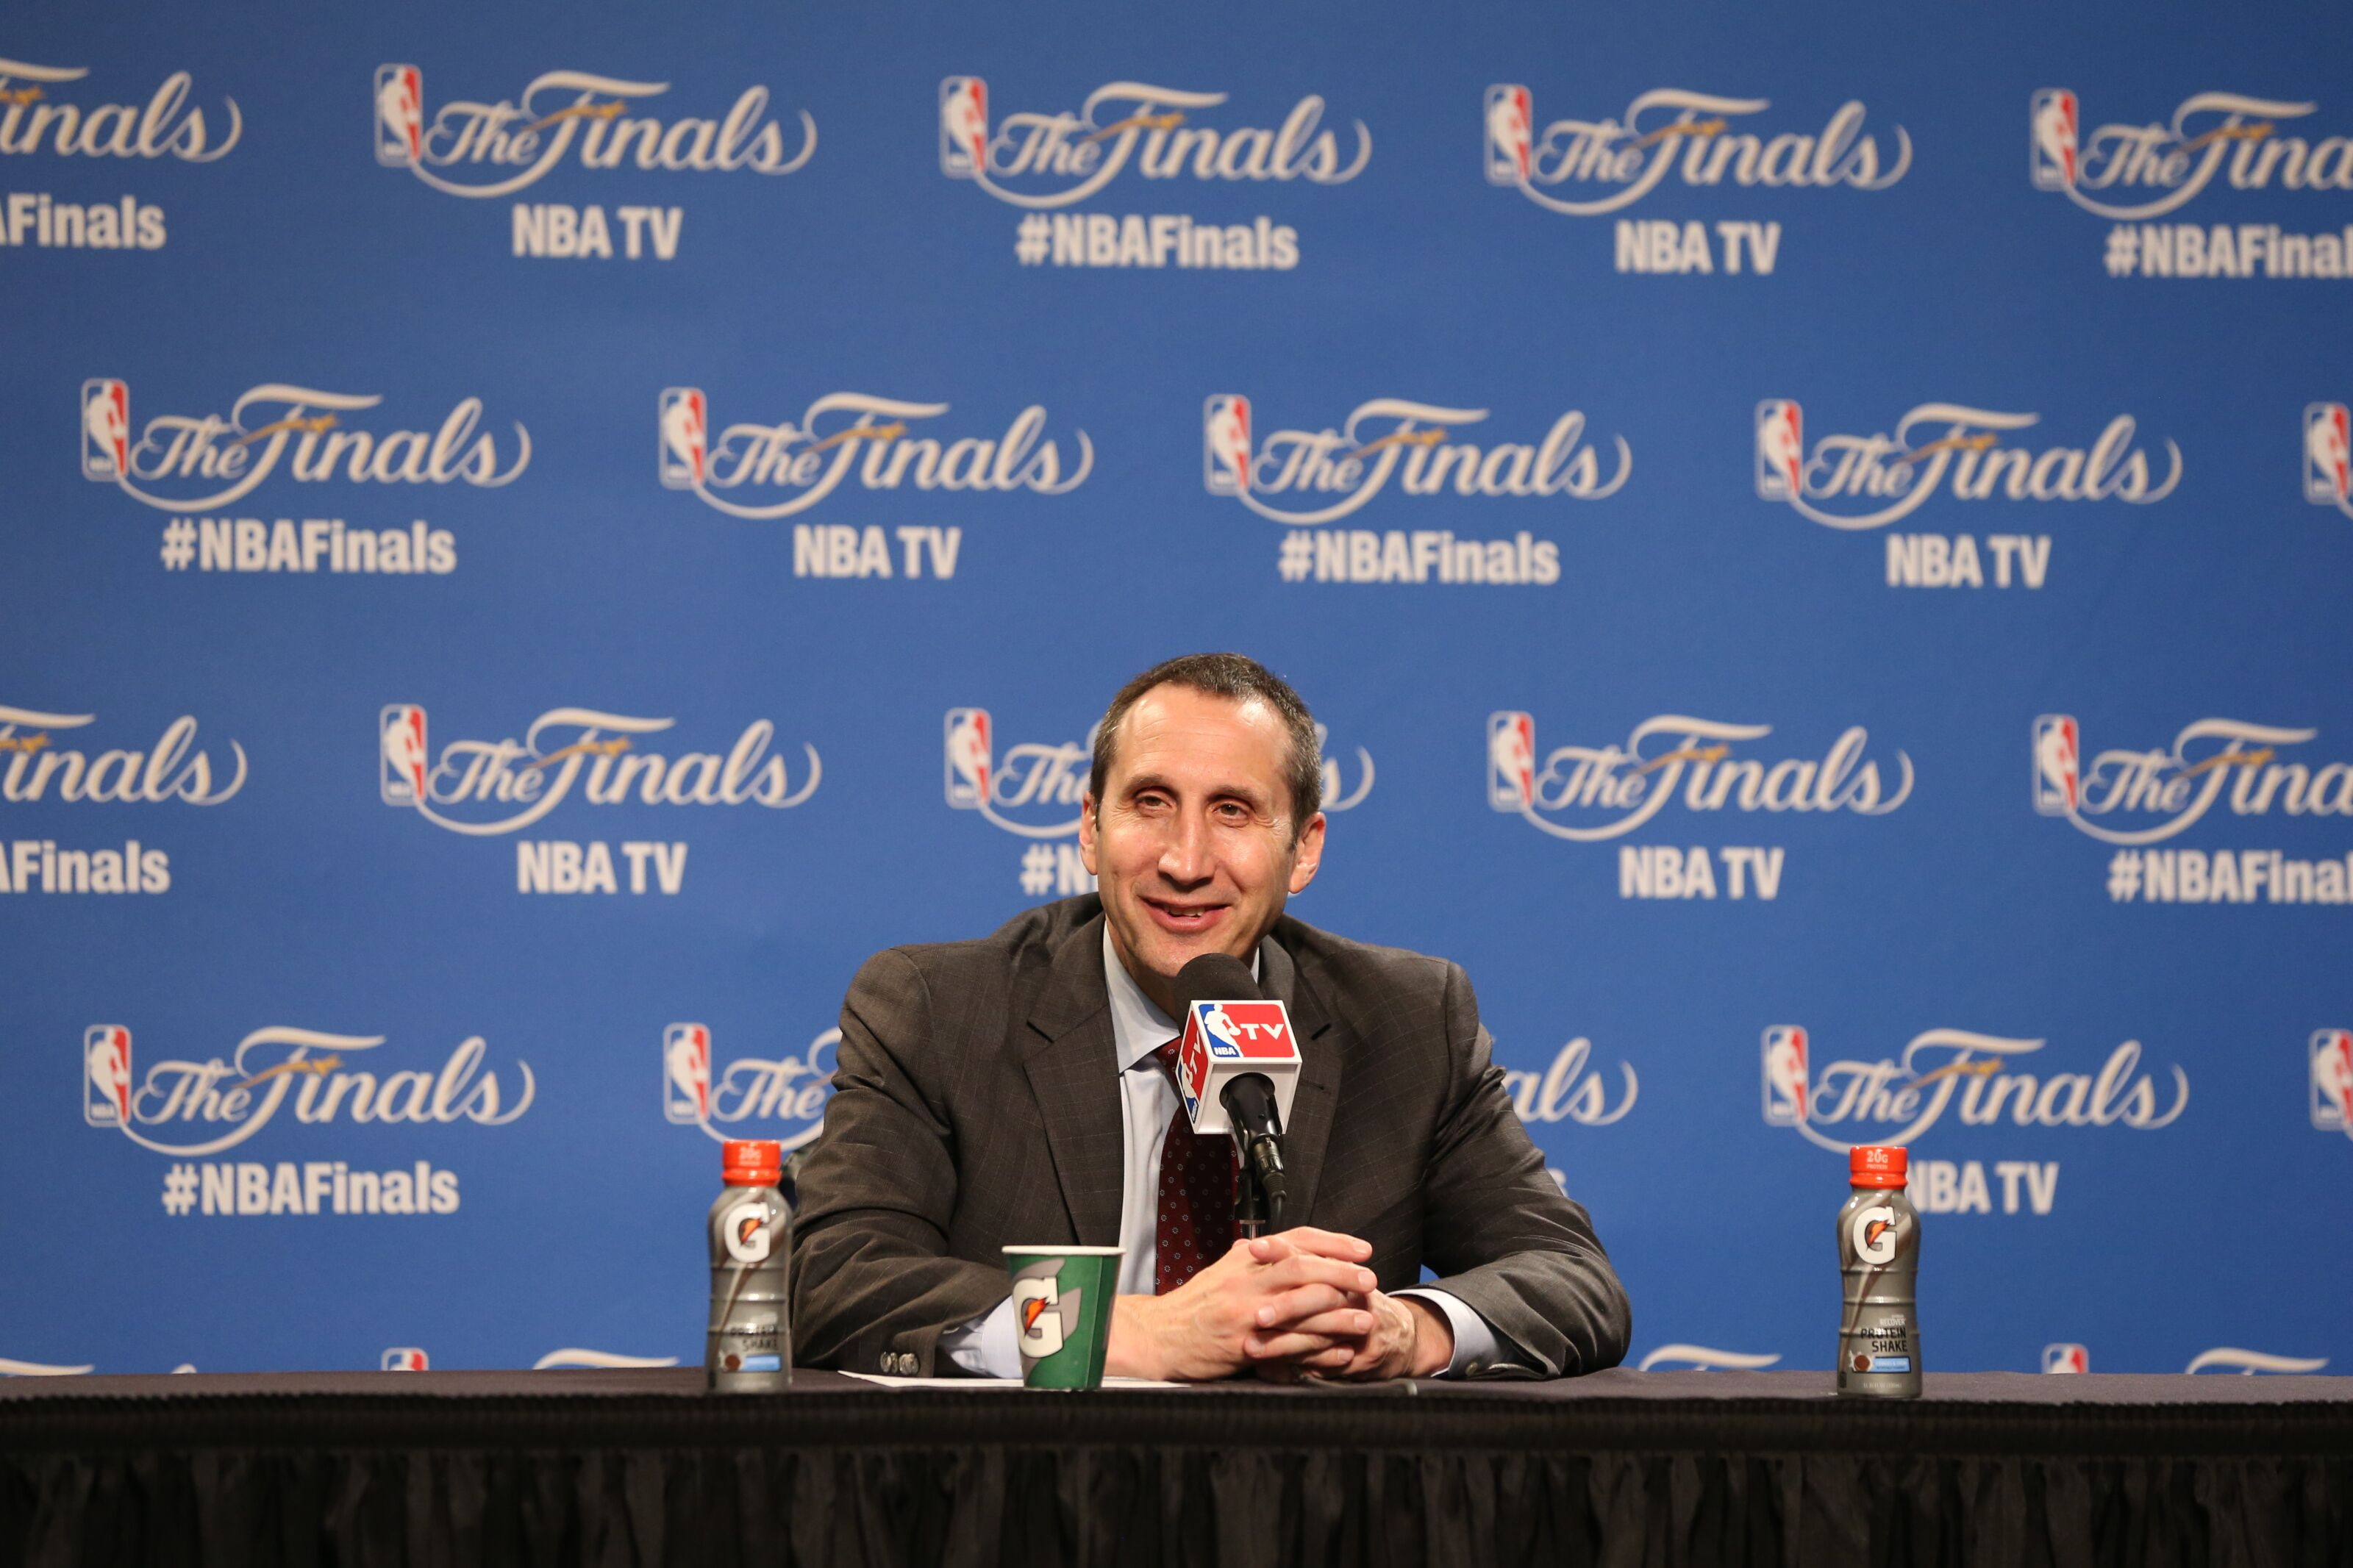 Cleveland Cavaliers: David Blatt diagnosed with multiple sclerosis